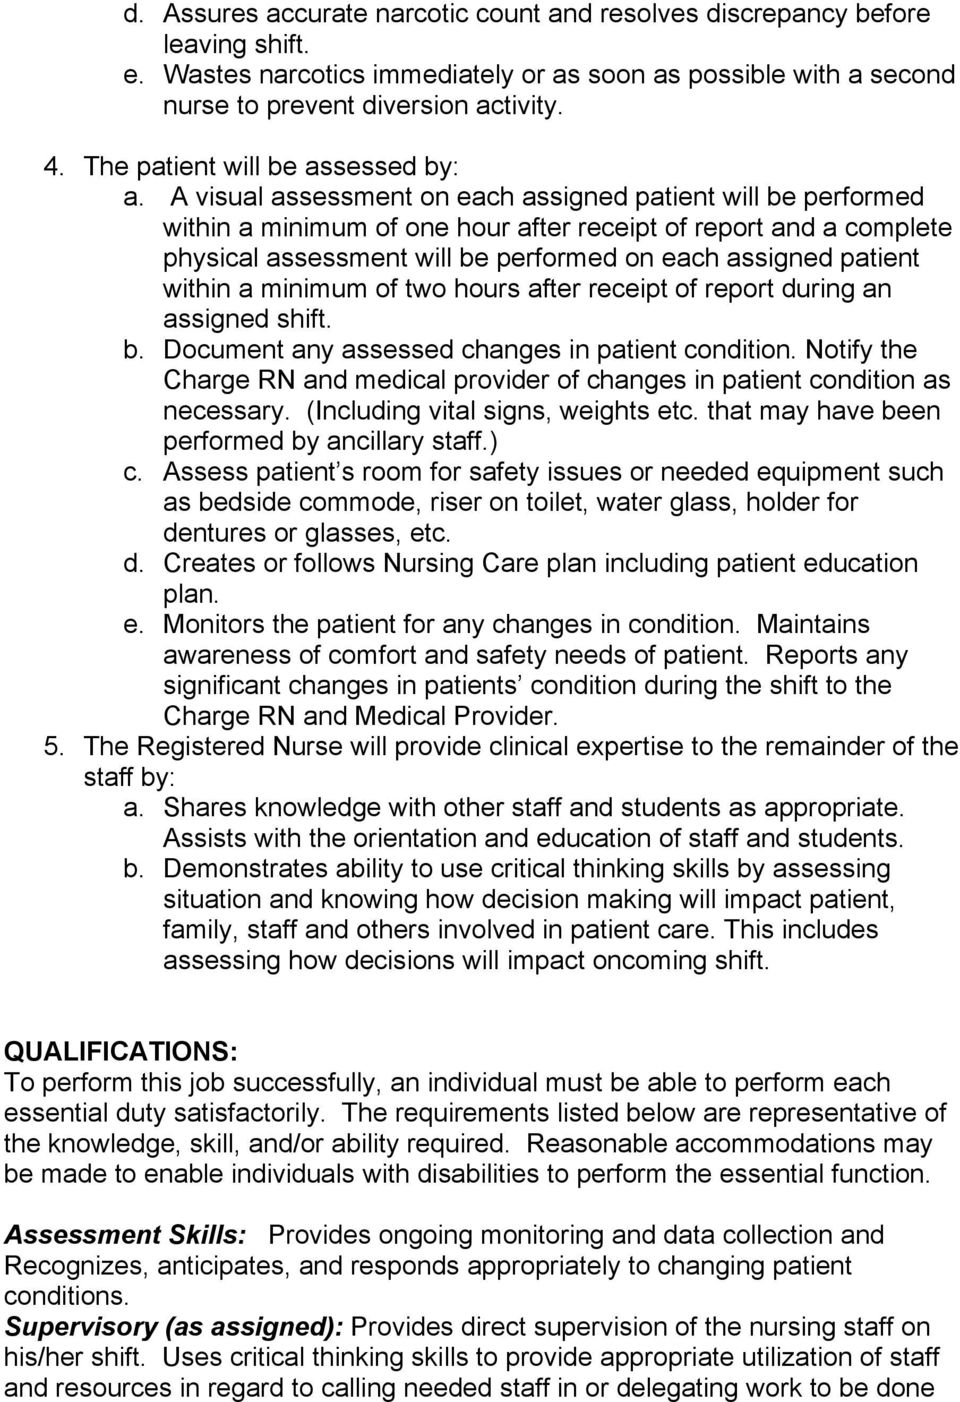 A visual assessment on each assigned patient will be performed within a minimum of one hour after receipt of report and a complete physical assessment will be performed on each assigned patient